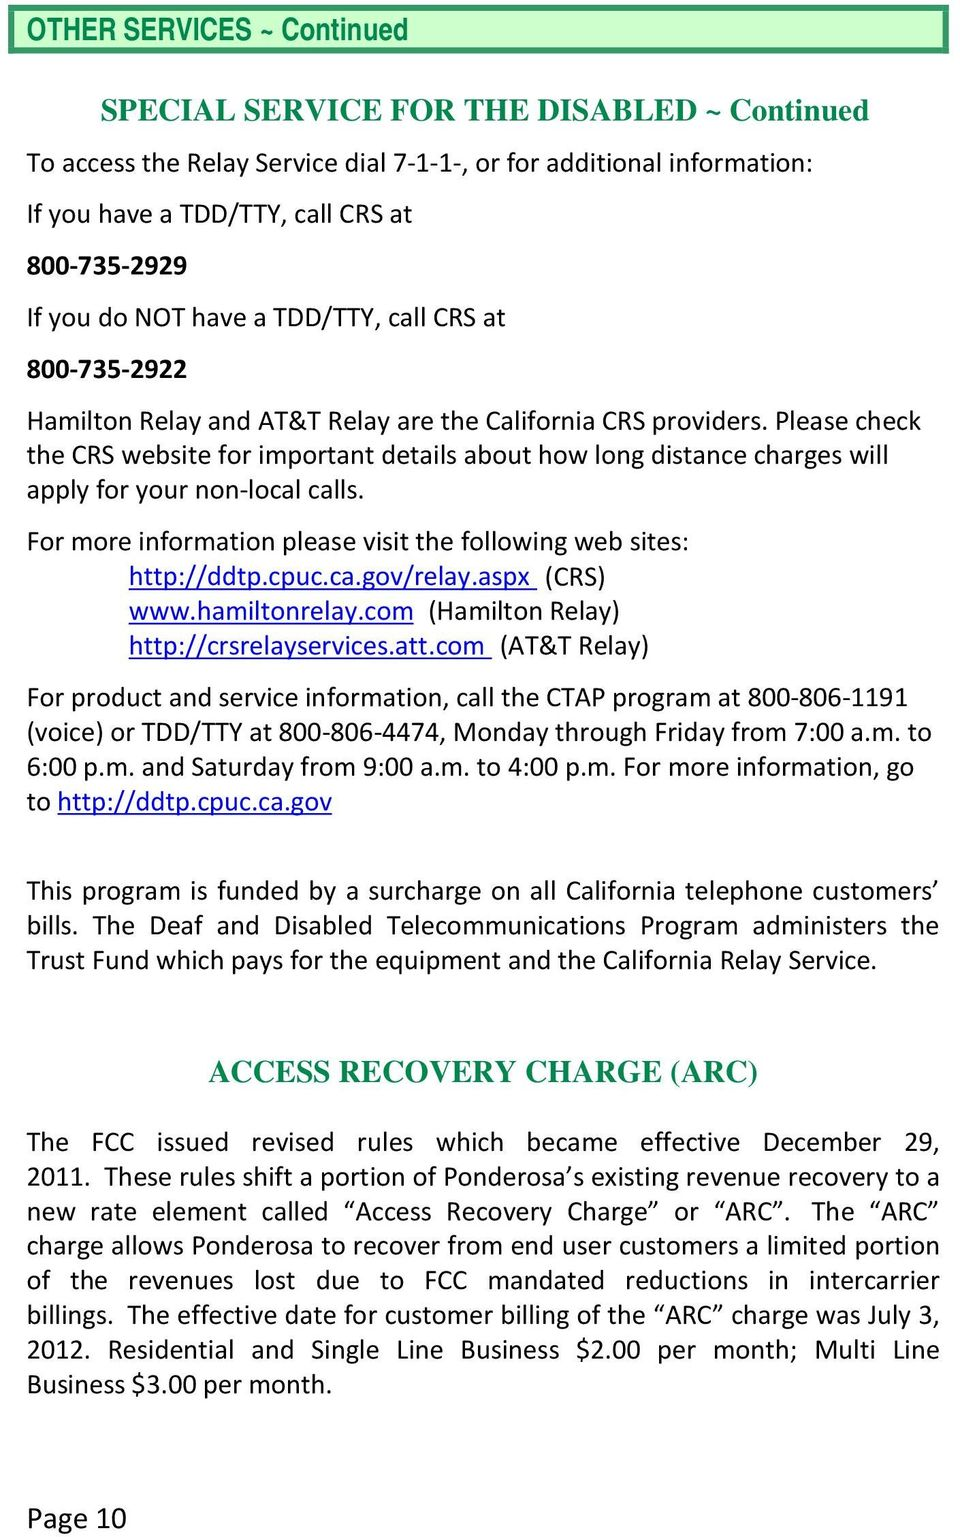 Please check the CRS website for important details about how long distance charges will apply for your non-local calls. For more information please visit the following web sites: http://ddtp.cpuc.ca.gov/relay.